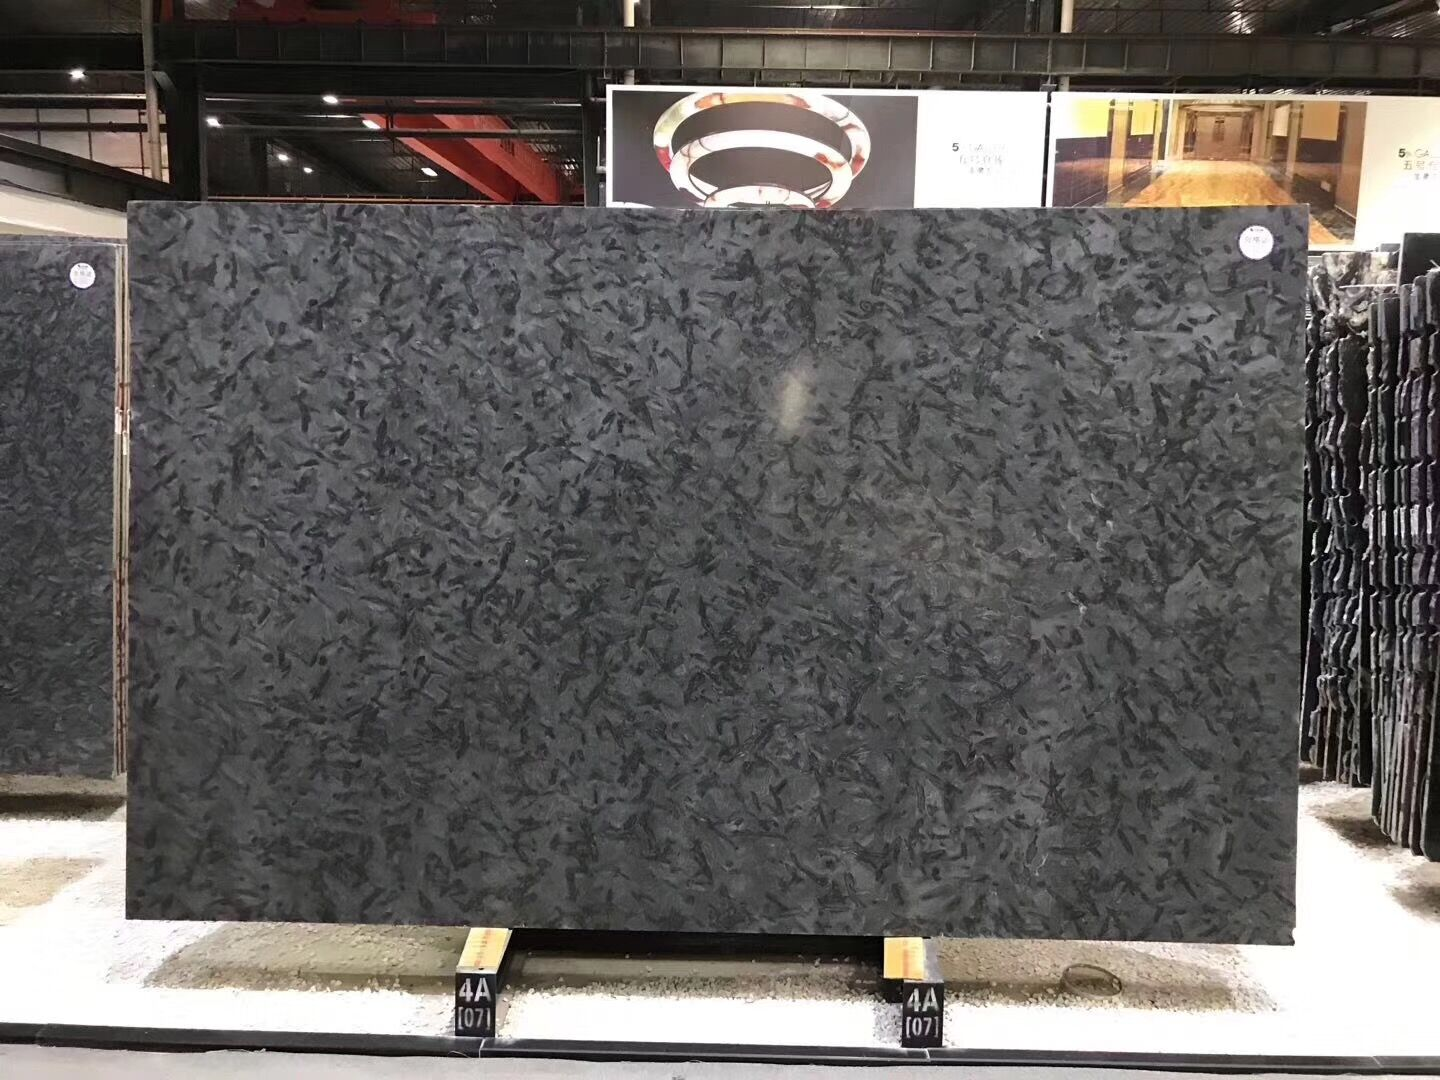 Versace Black Granite Brazil Black Polished Slab & Tile for Walling & Flooring